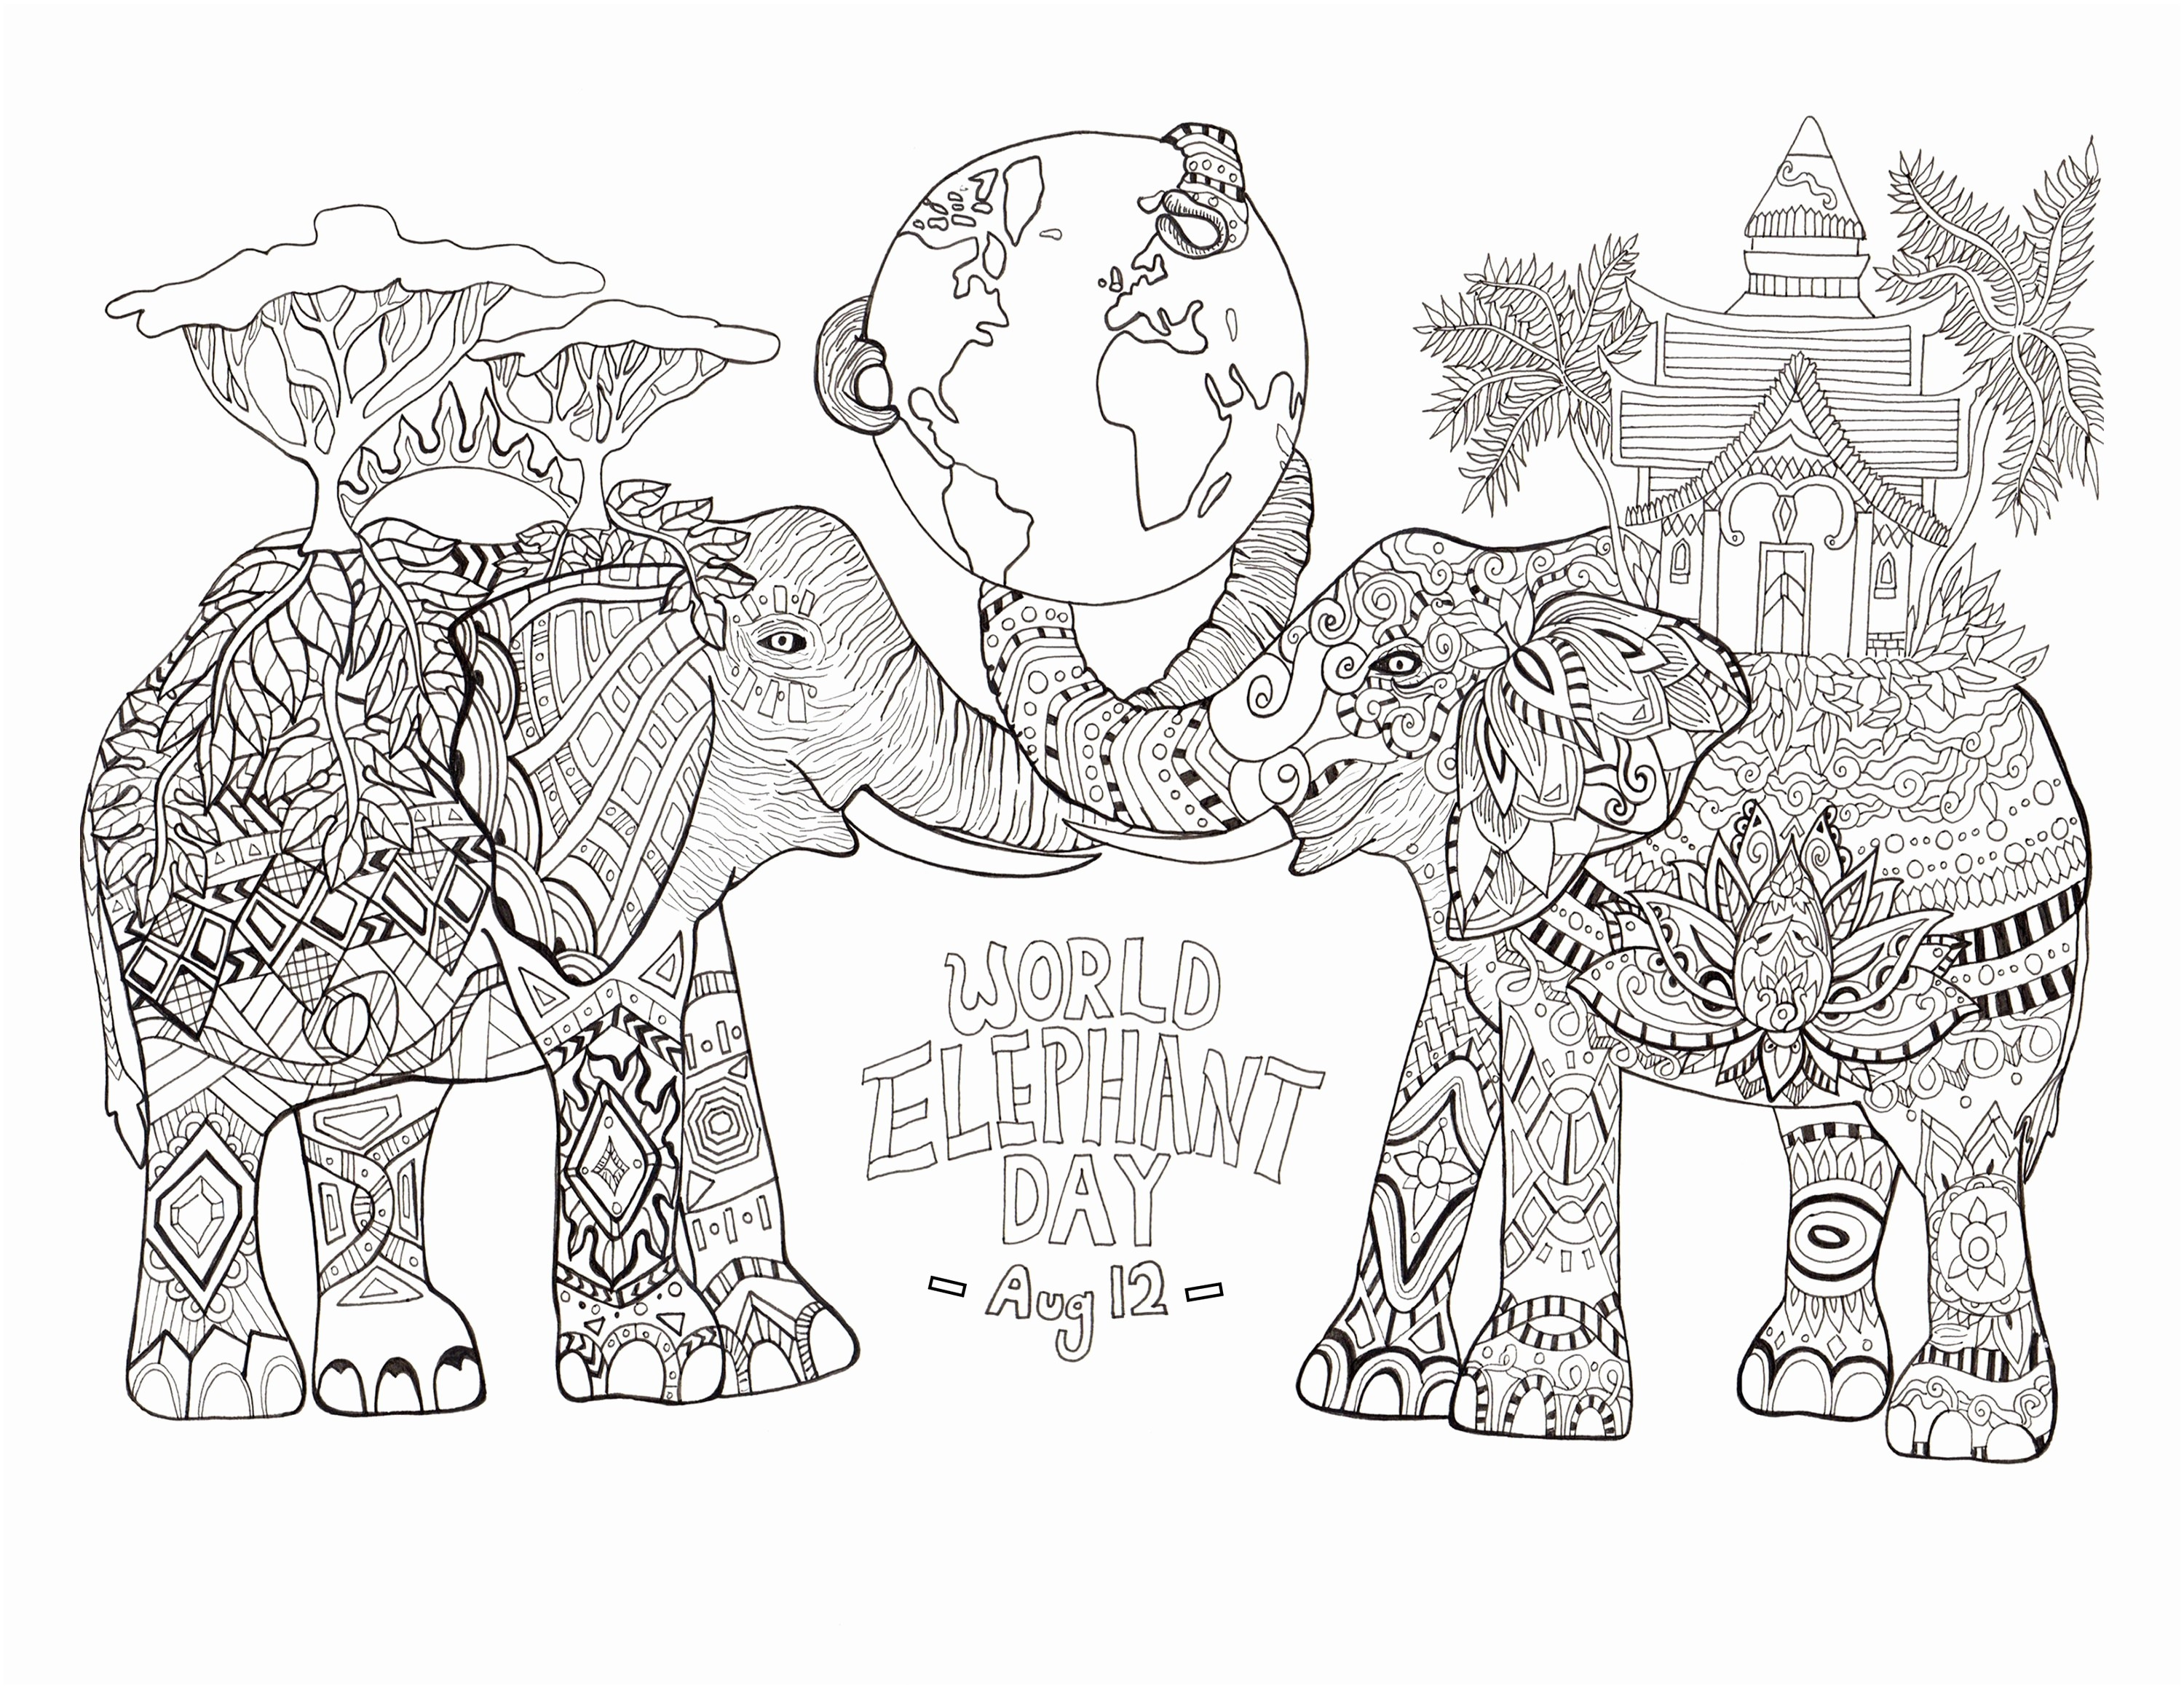 free cornucopia coloring pages Collection-Free Animal Coloring Pages Free Coloring Pages for Christmas Lovely Best Od Dog Coloring Pages 20-q